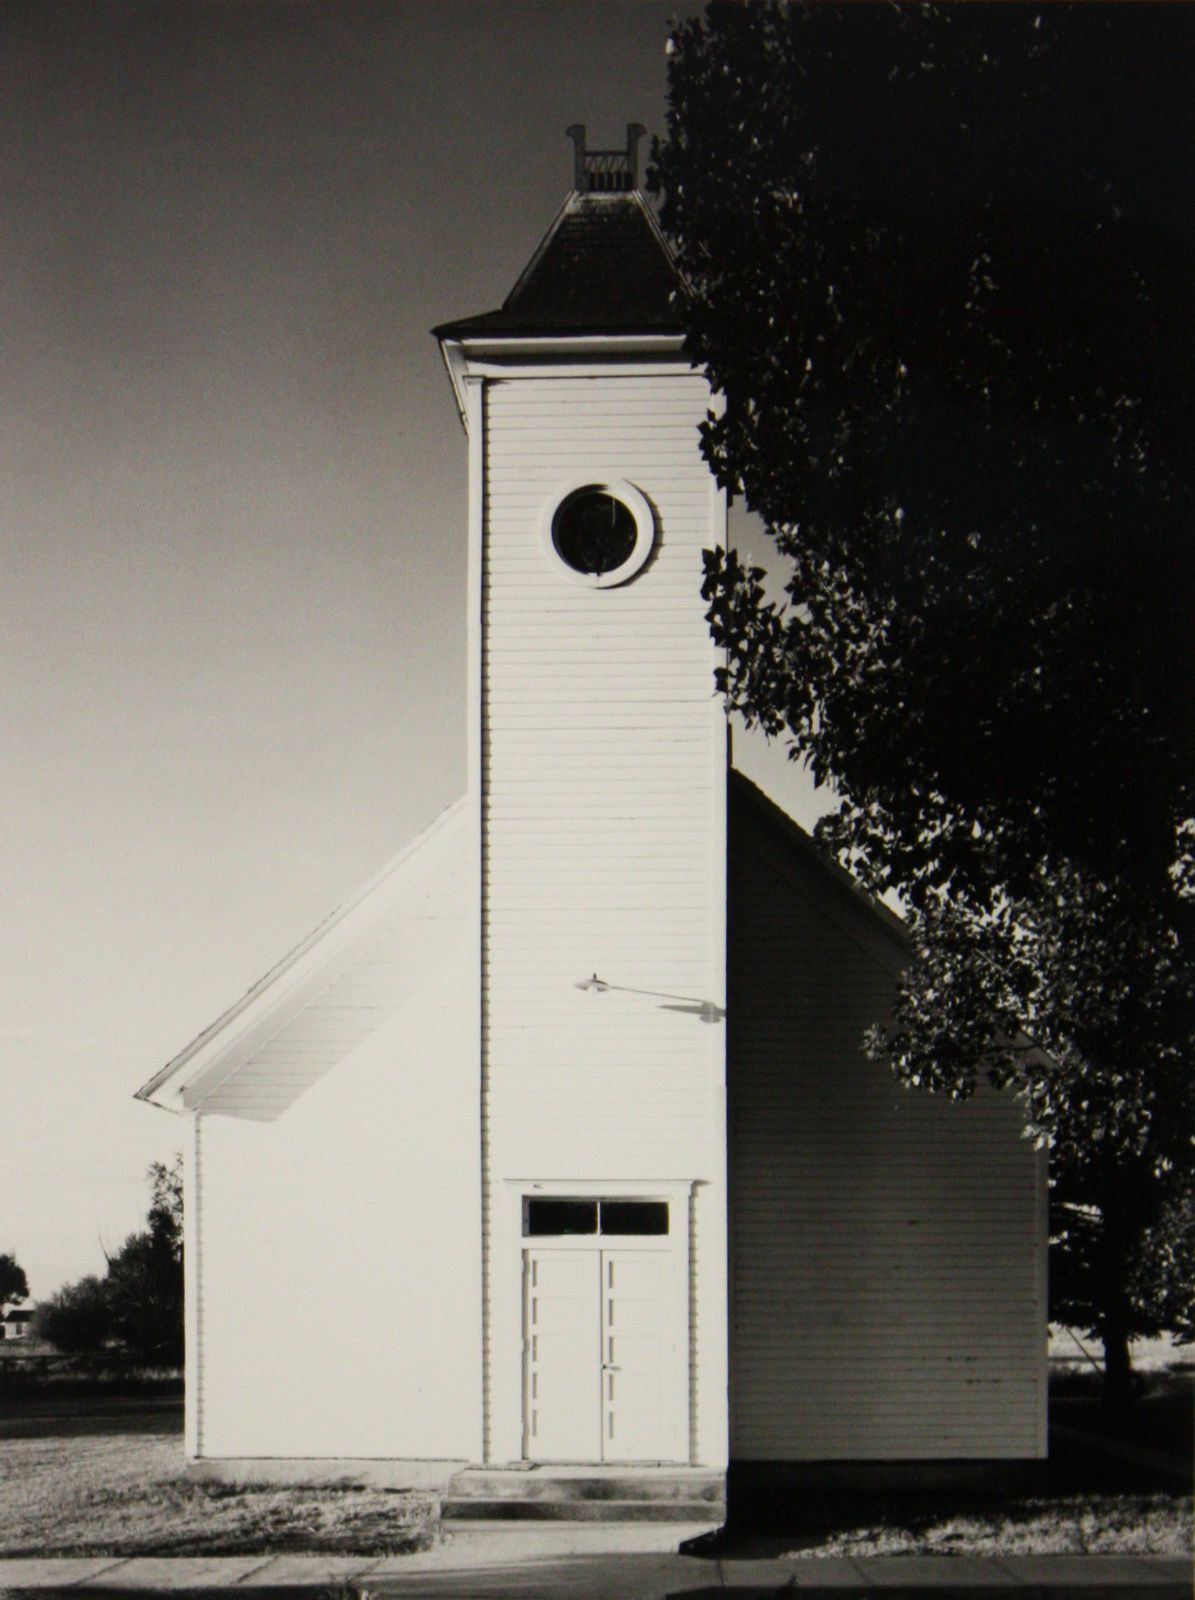 Eglise méthodiste, BOWEN, Colorado, 1965